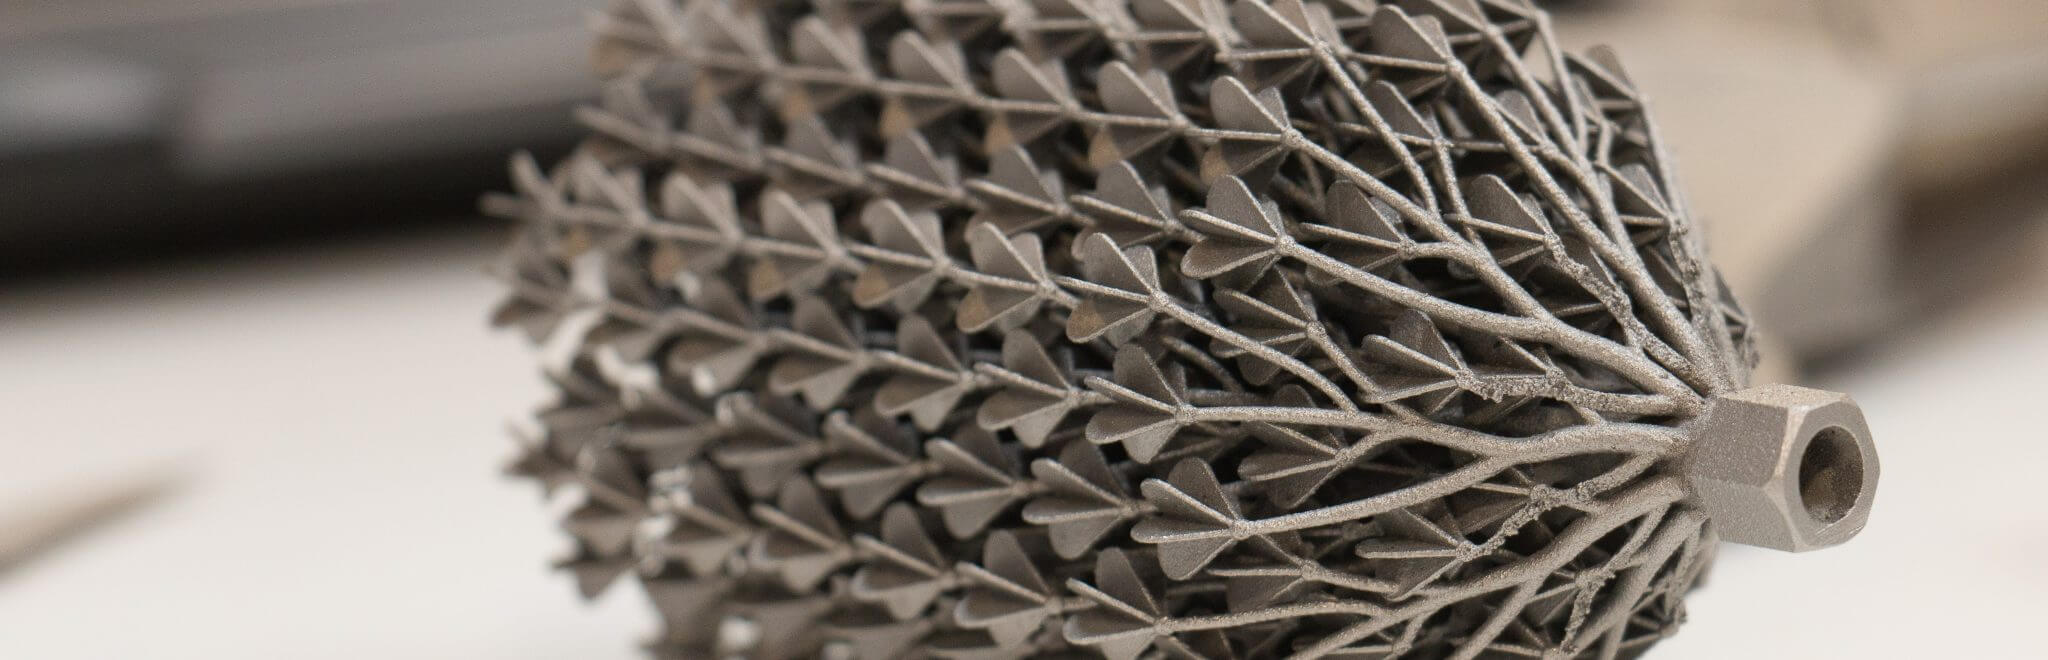 ULTEM & PEEK: the Ultimate Guide to High-Performance 3D Printing Materials